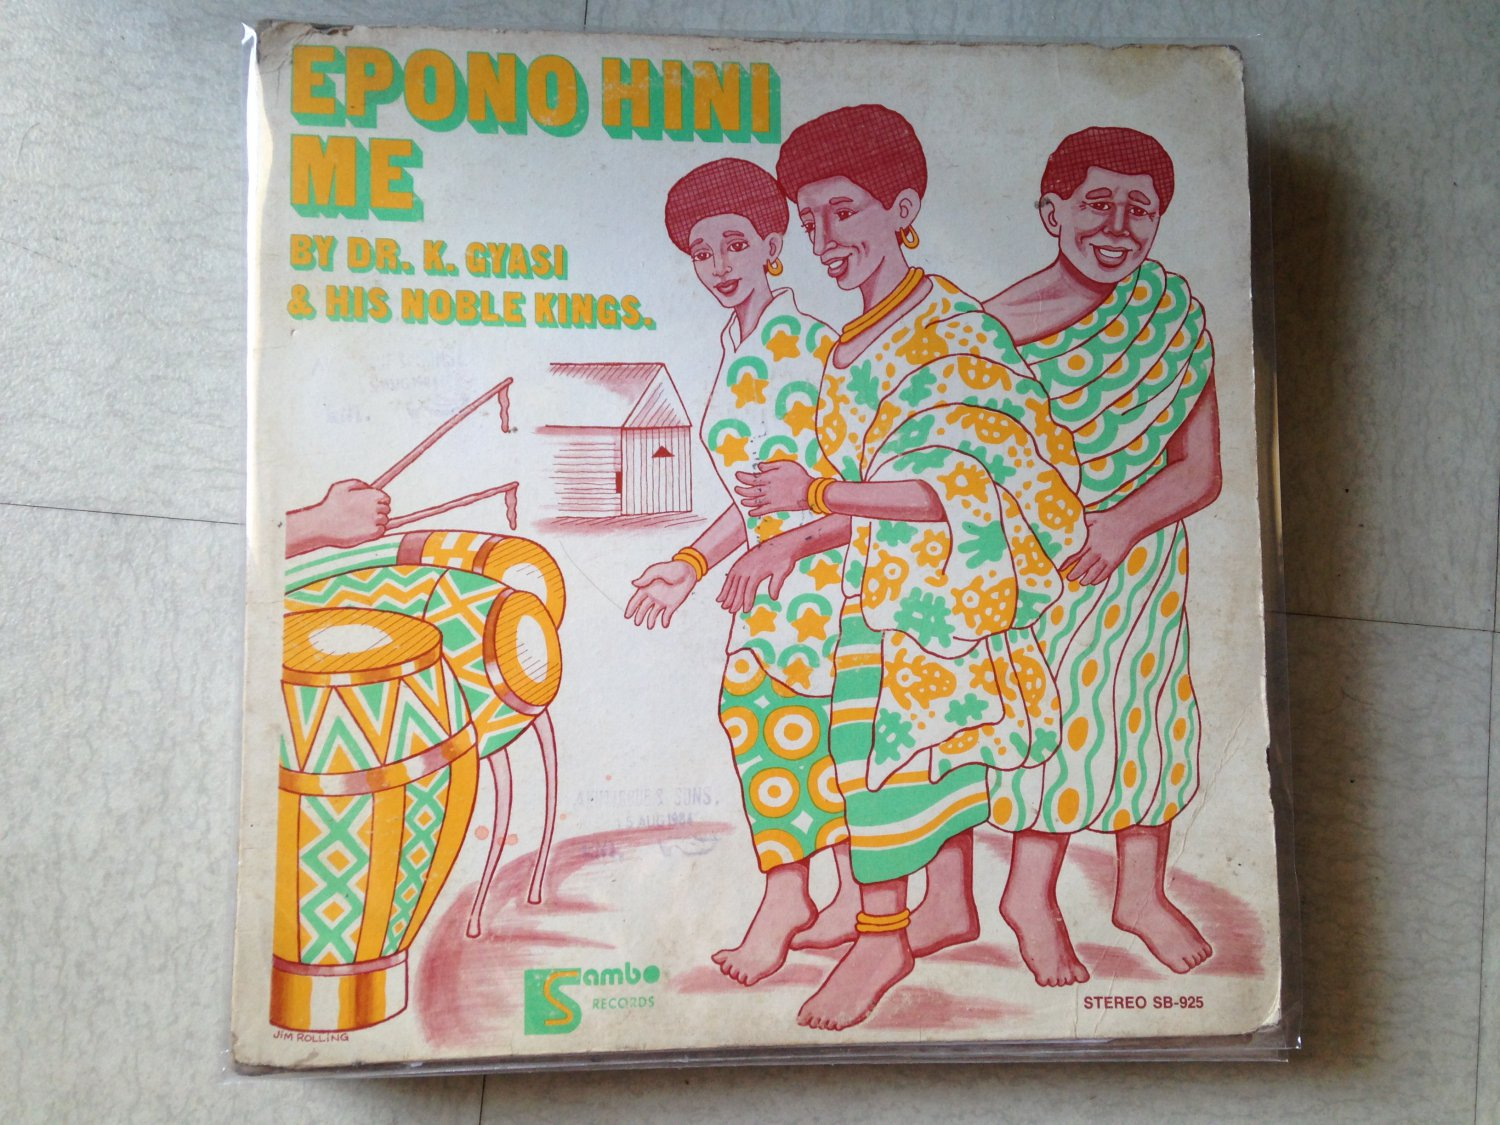 DR K GYASI & HIS NOBLE KINGS LP epono hini me GHANA mp3 LISTEN